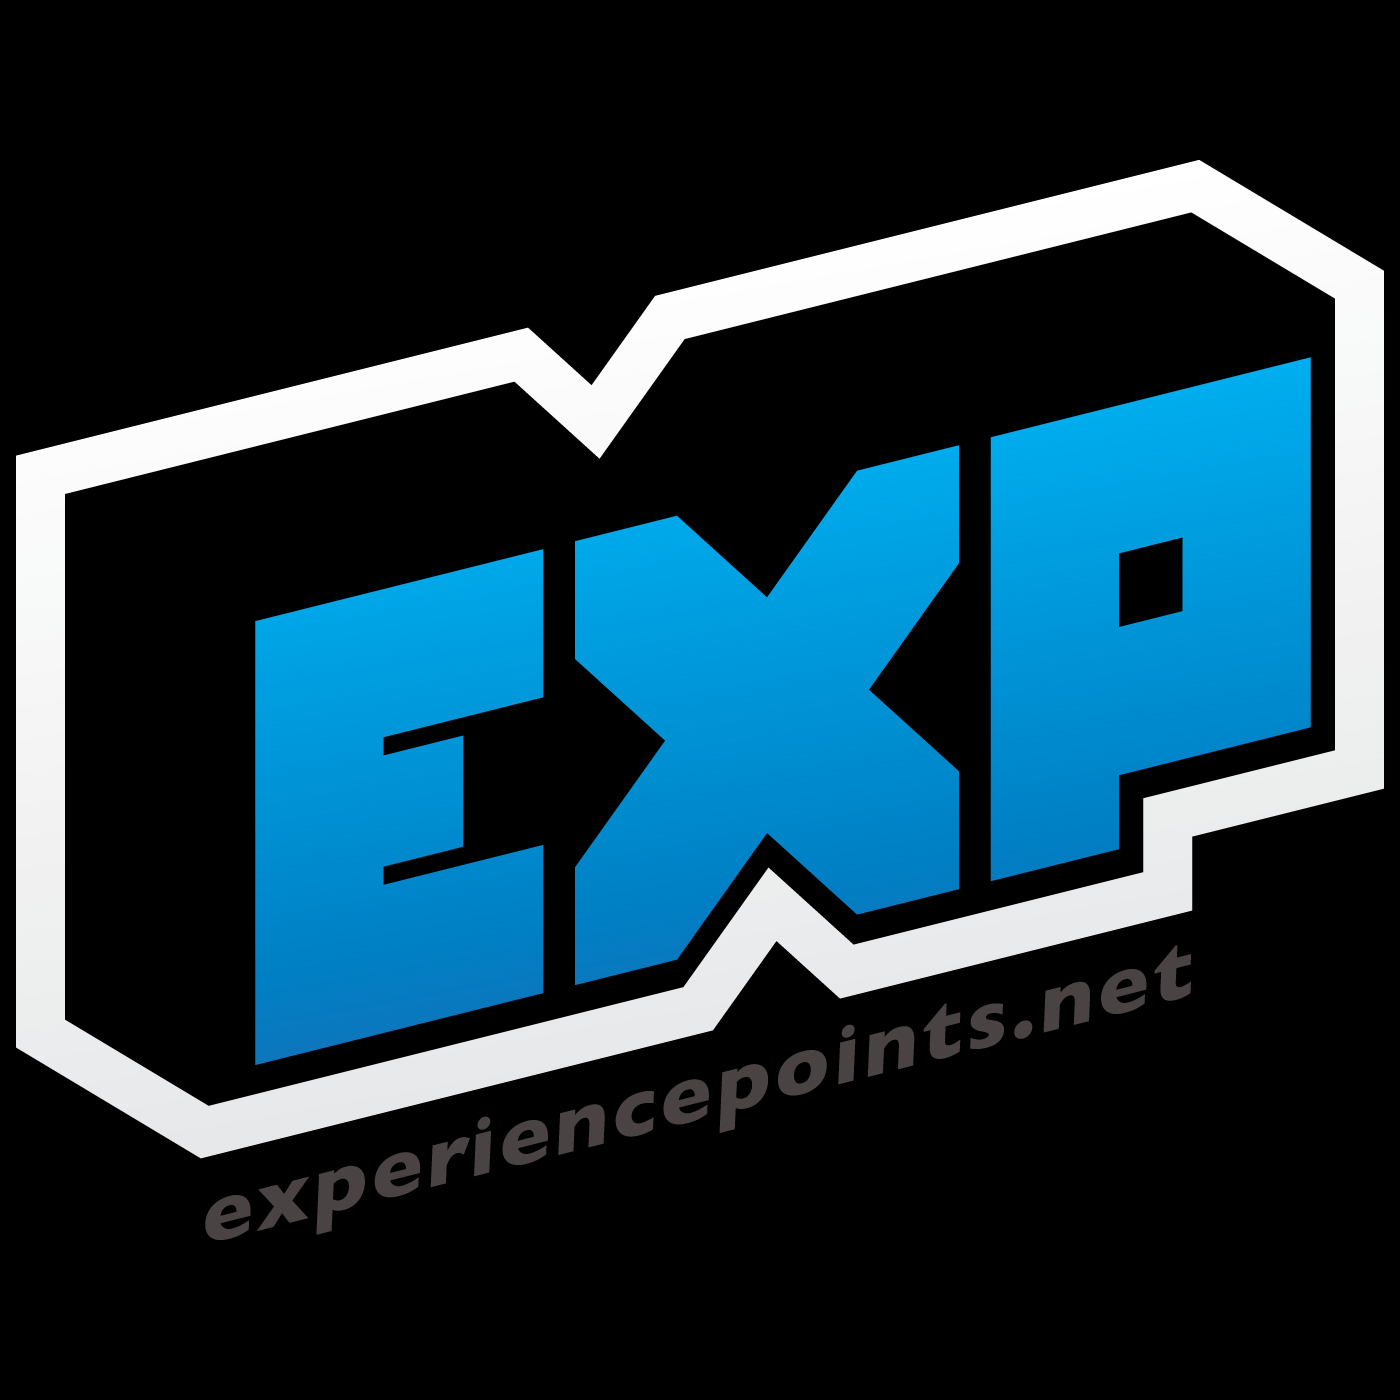 The Experience Points Podcast logo